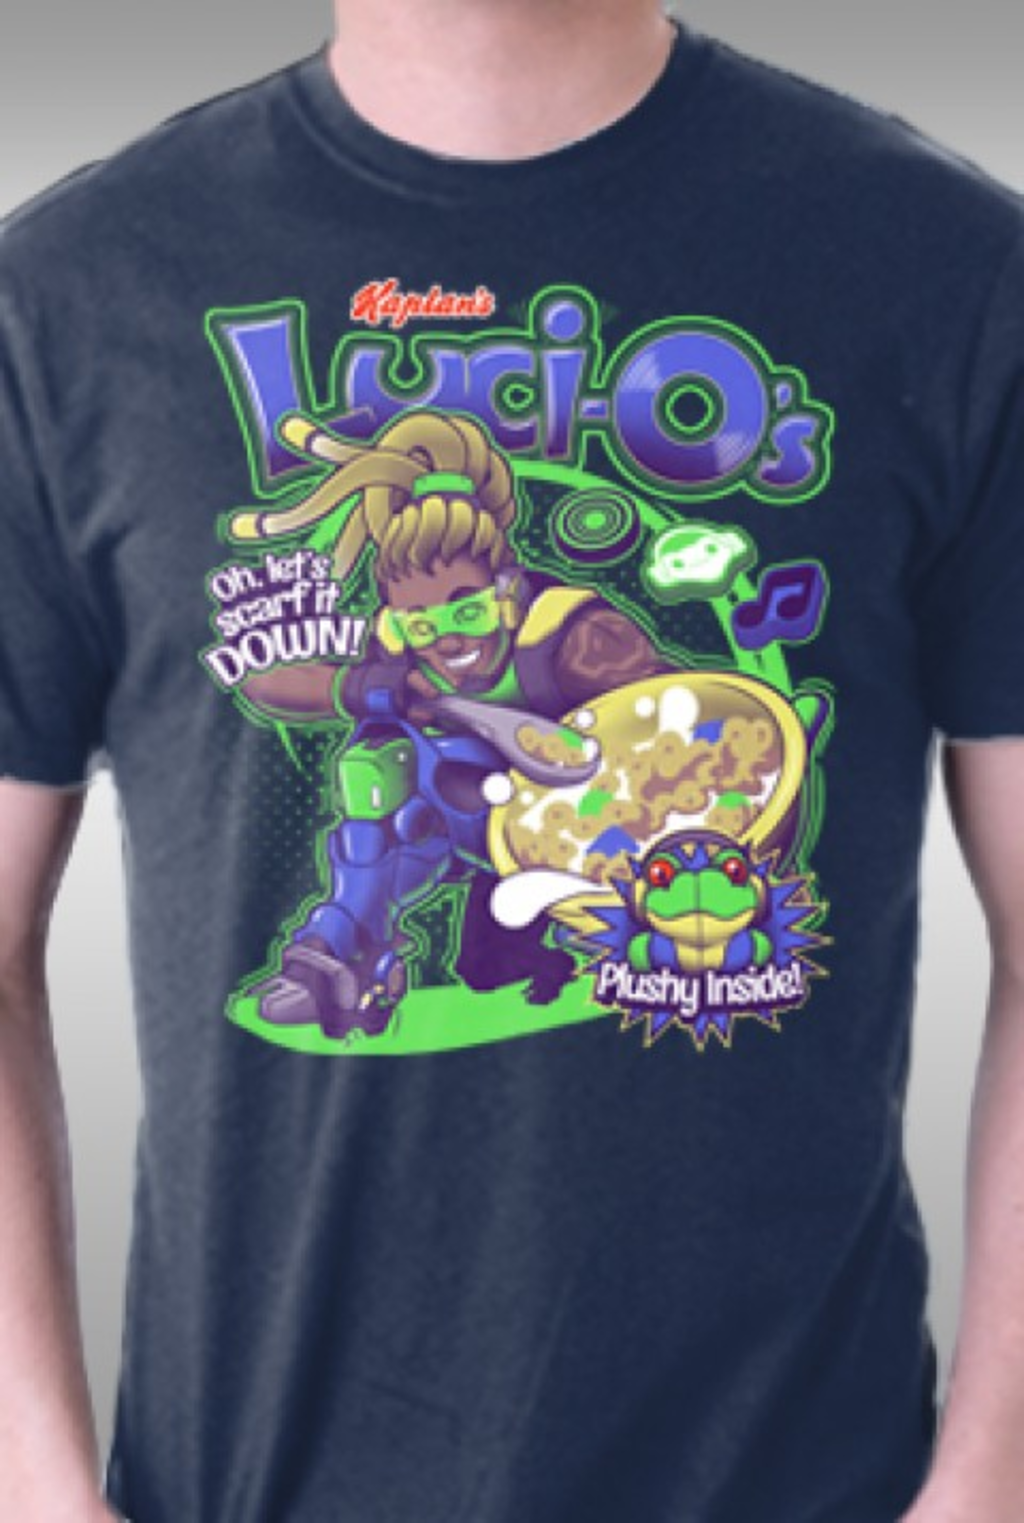 TeeFury: A Balanced DJ Breakfast